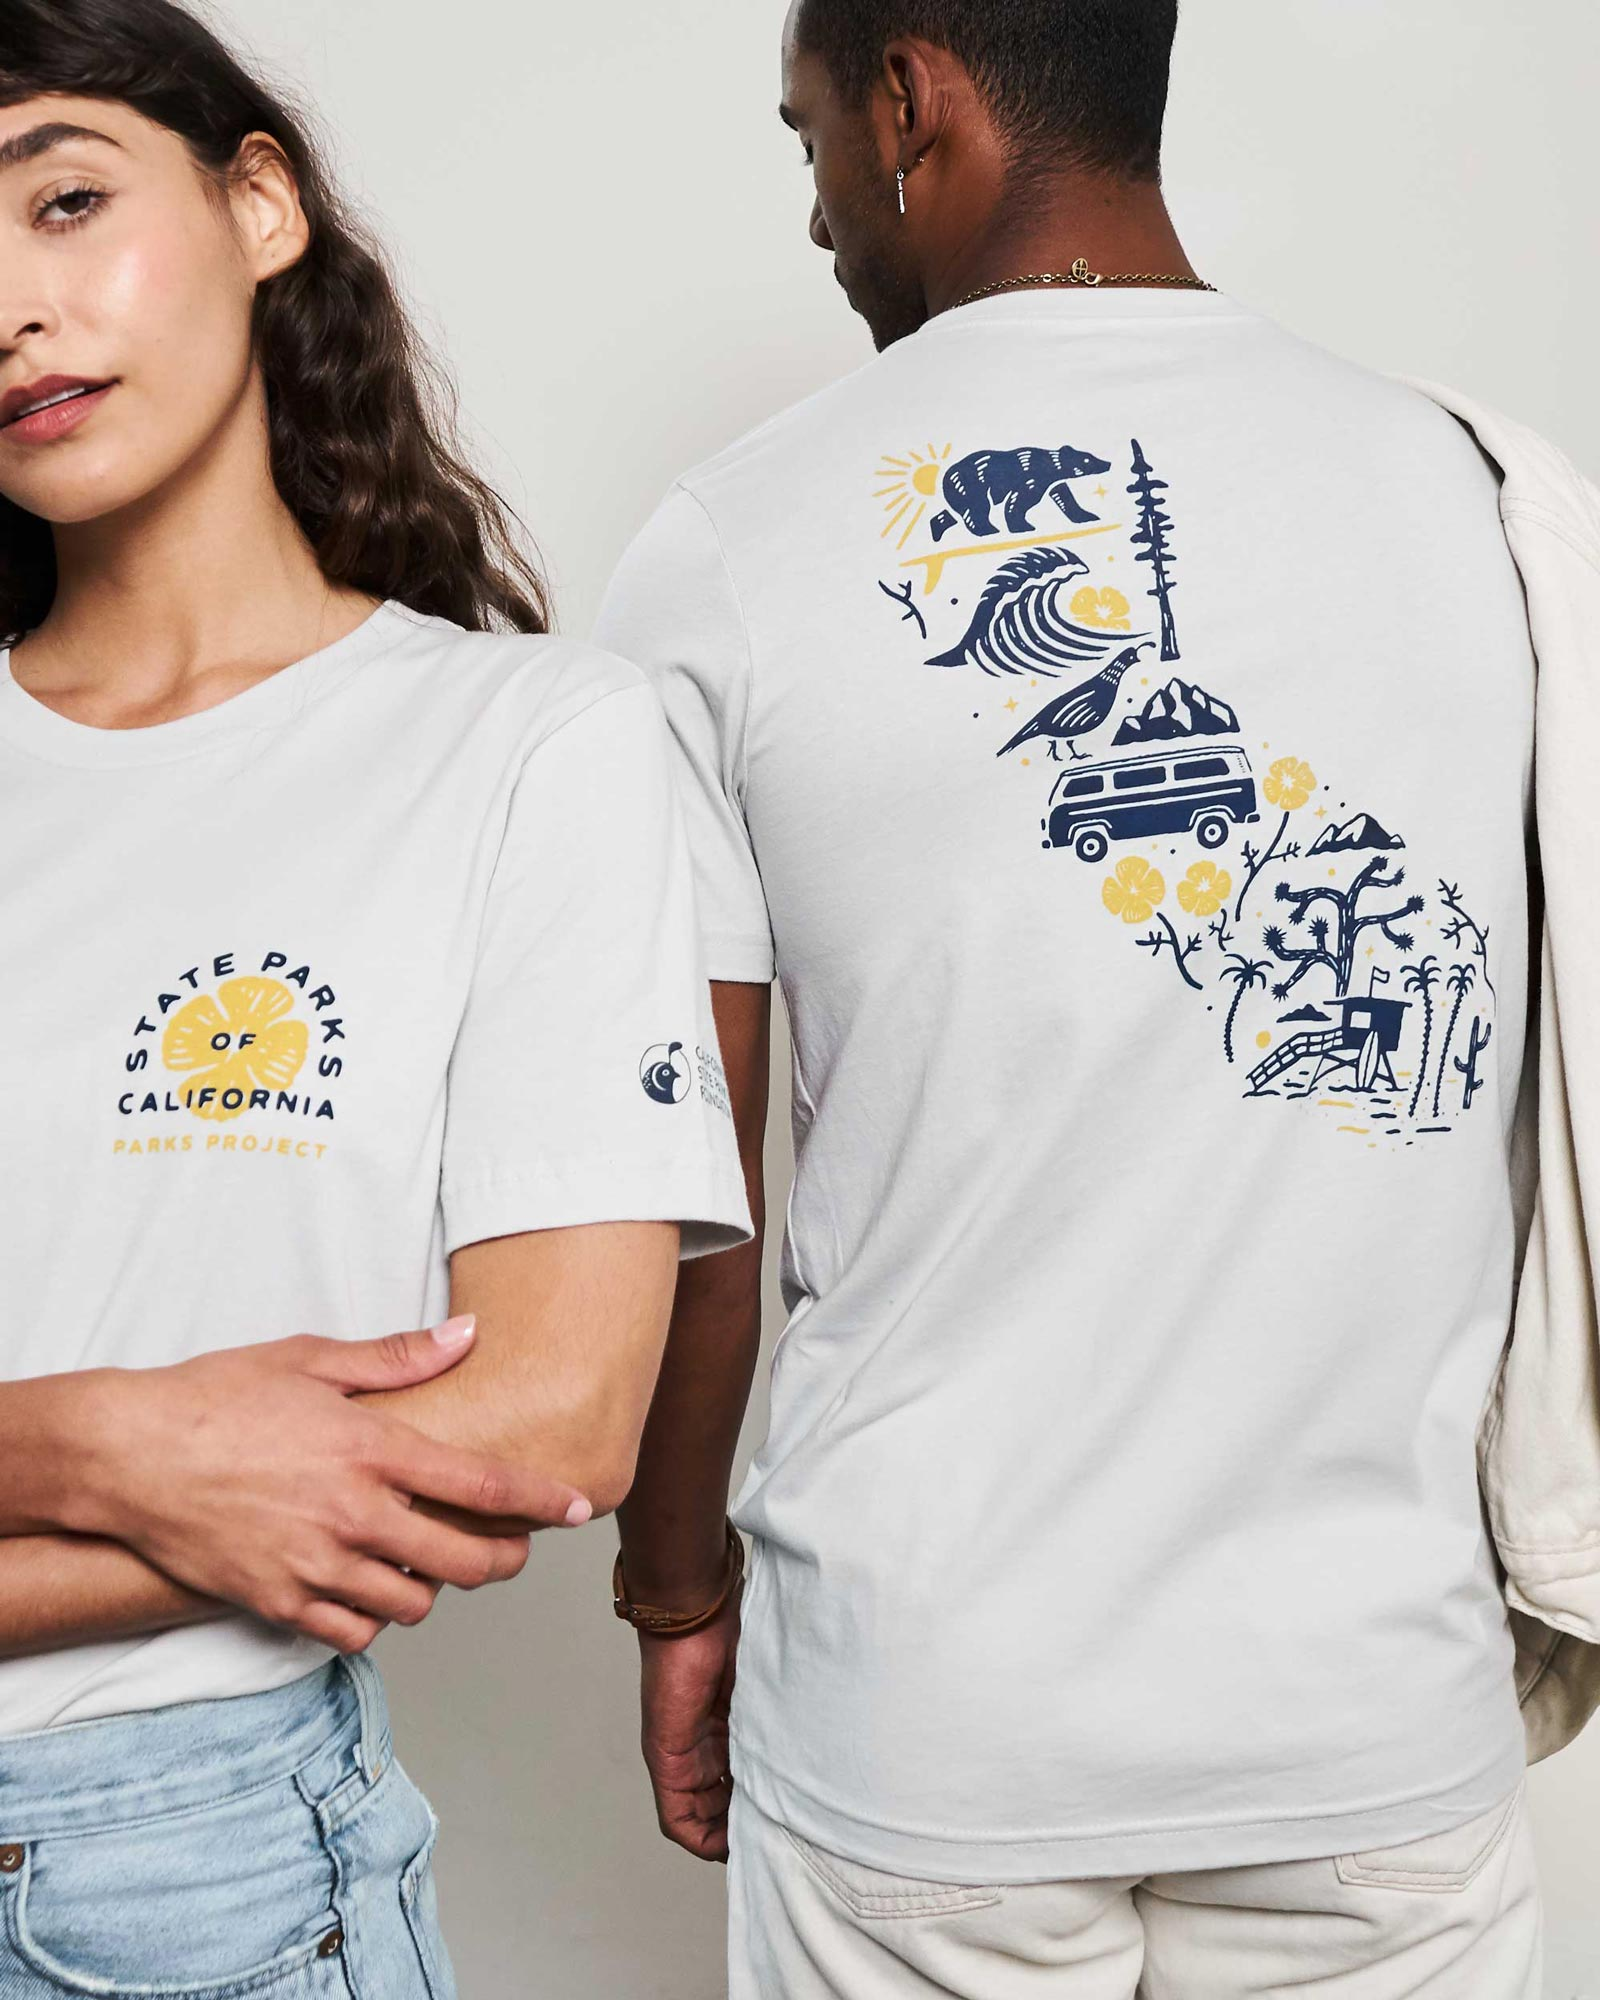 State Parks of California Tee | Parks Project | California State Parks Apparel